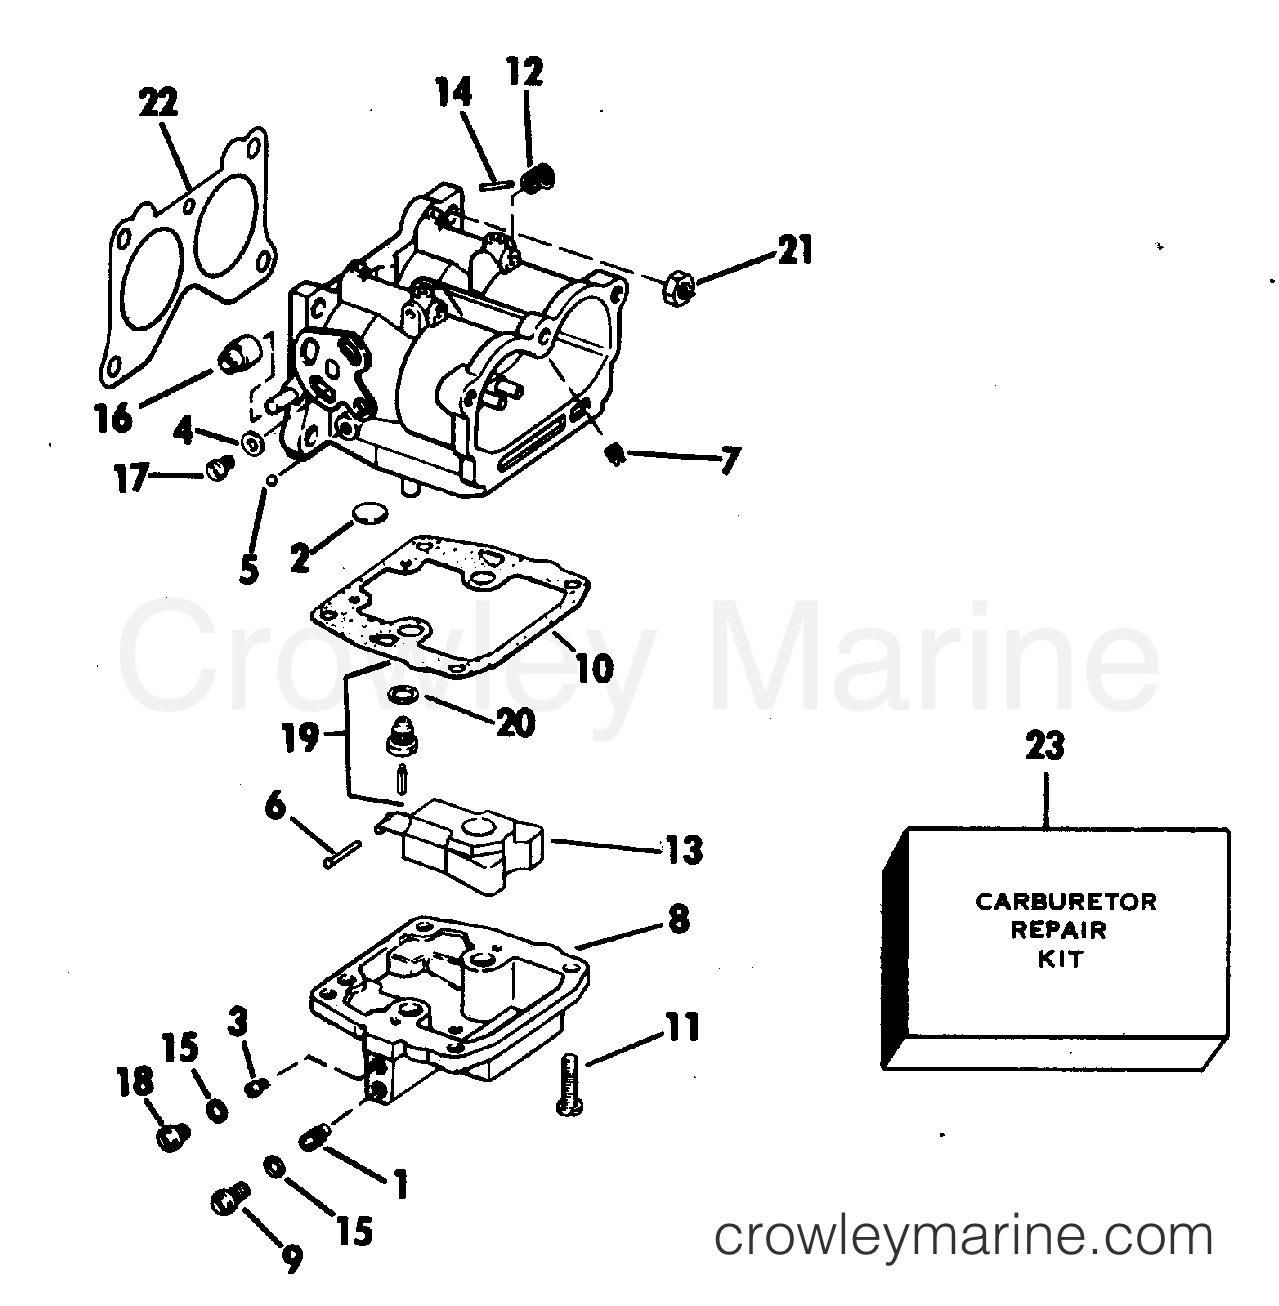 Carburetor Early Production 90 115 Only